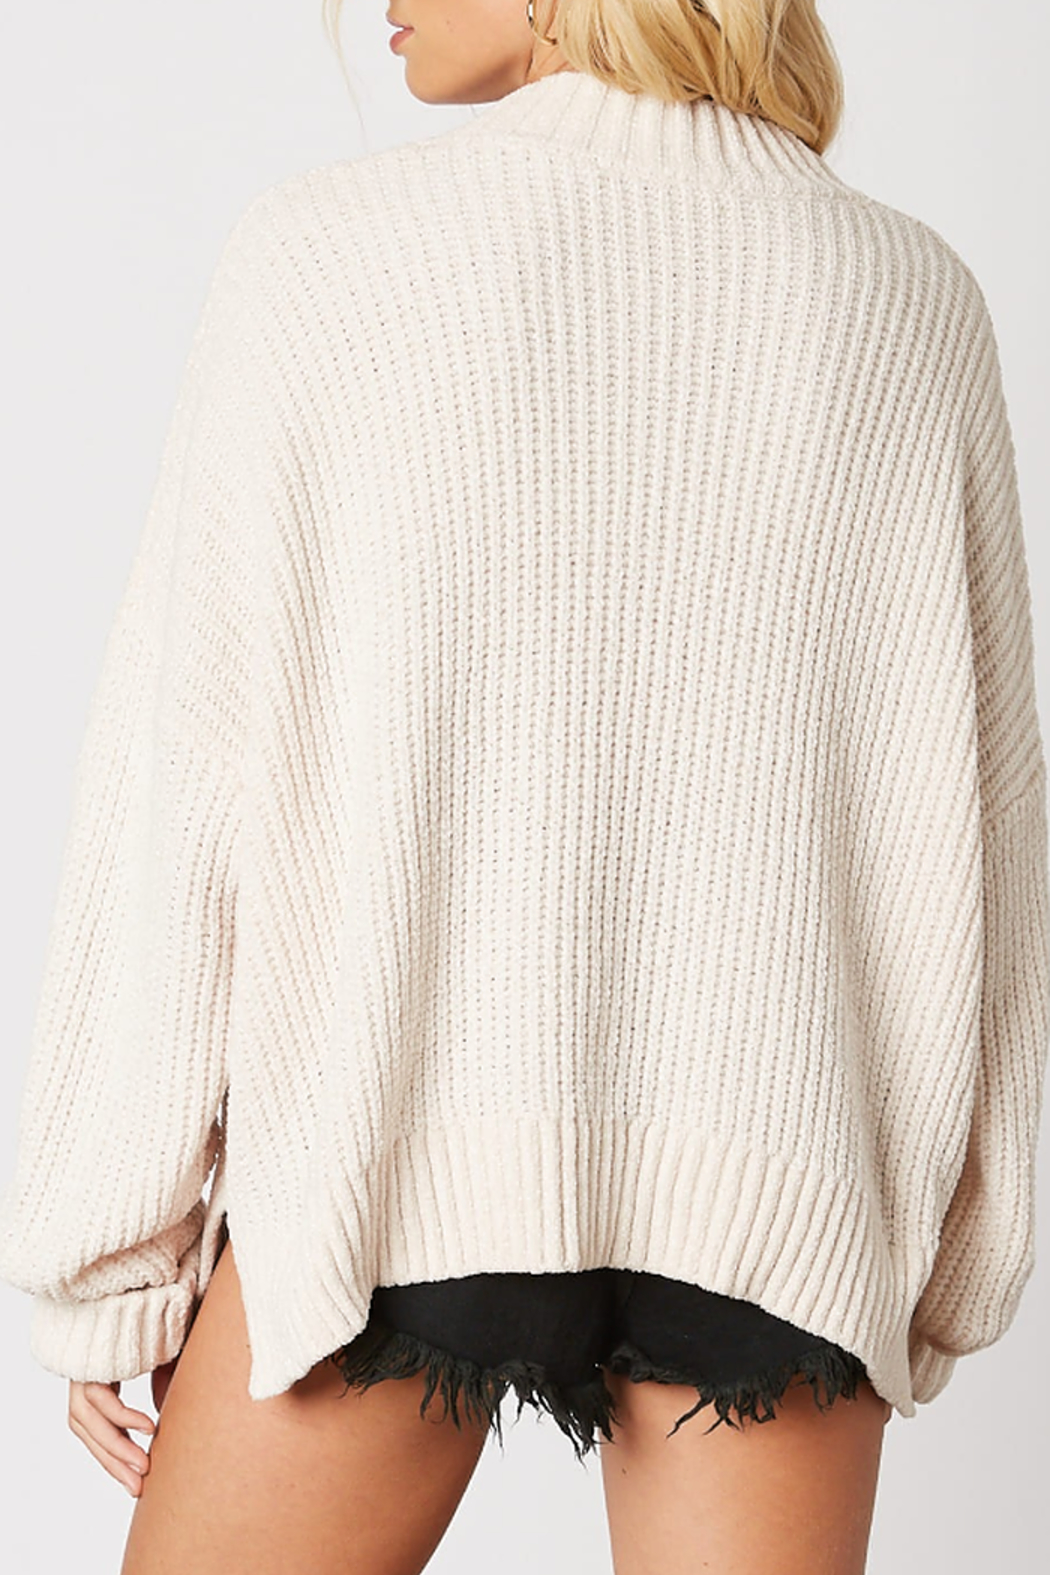 Cotton Candy Ribbed Knit Sweater - Front Full Image